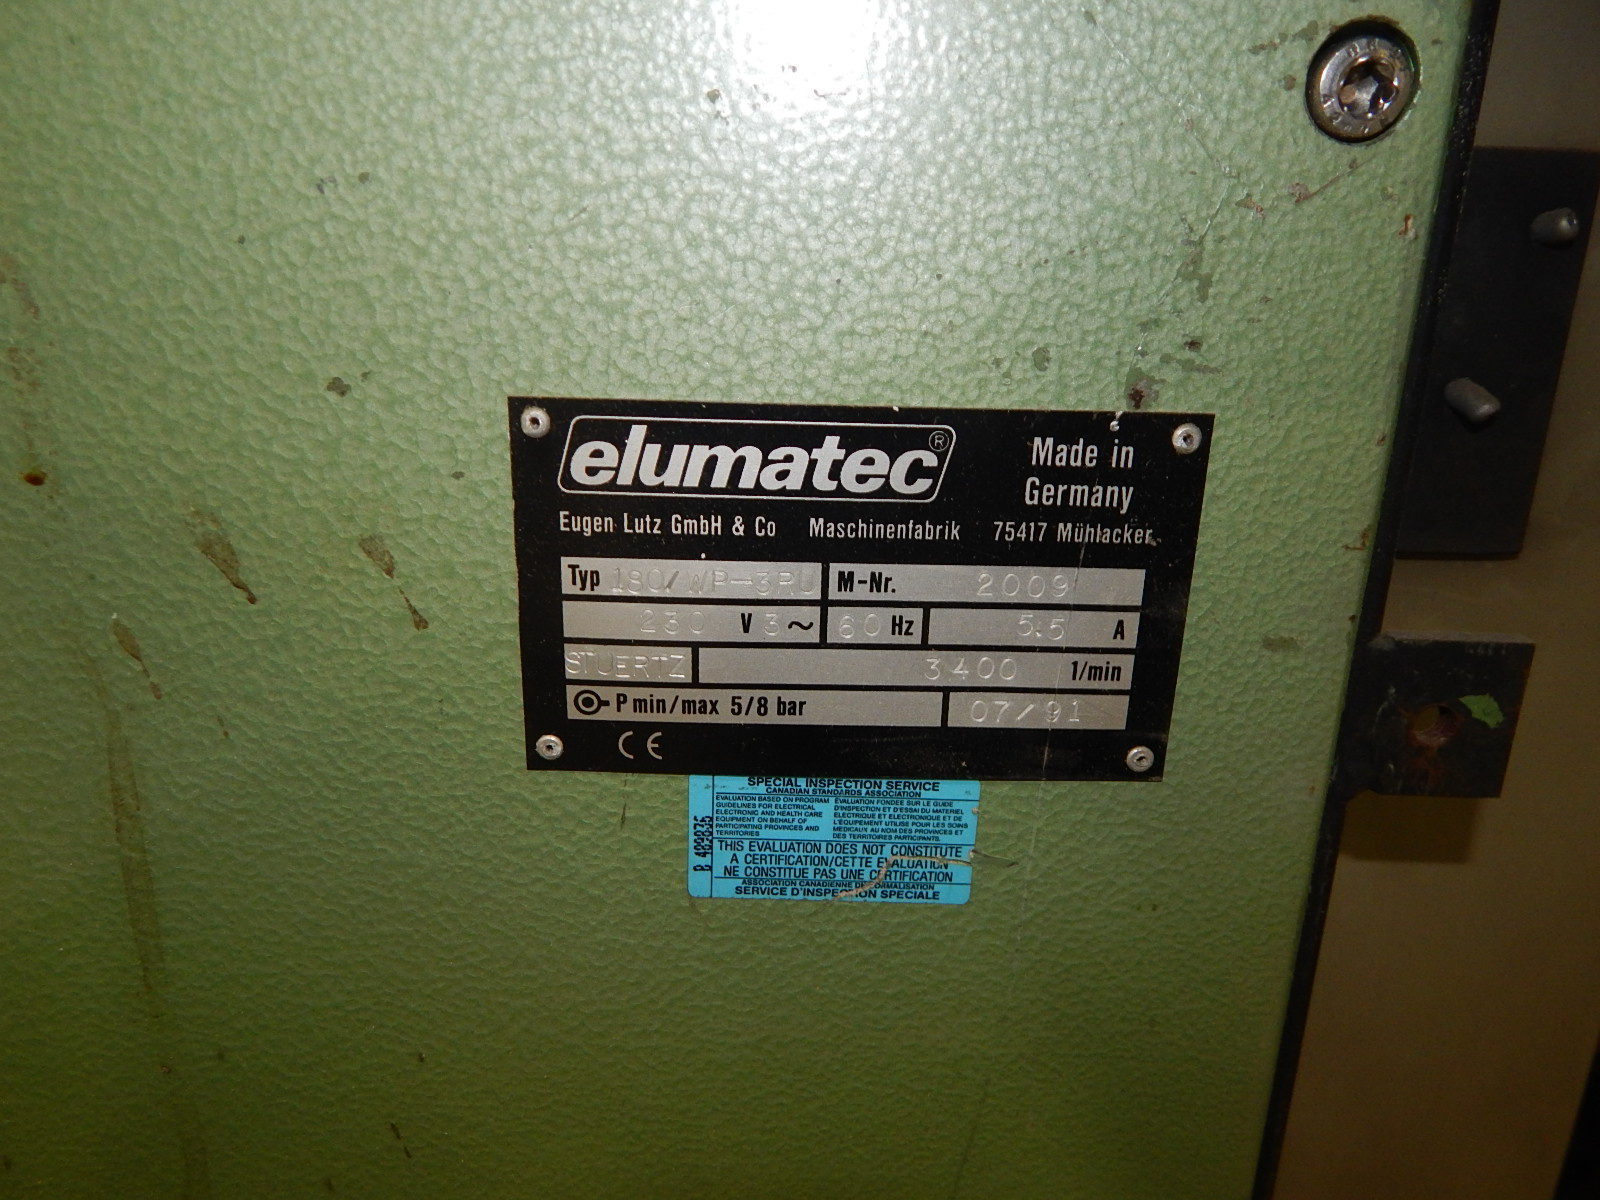 ELUMATEC 180/WP-3RU SINGLE HEAD CORNER CLEANER WITH 3,400 RPM, 230V/3PH/60HZ, S/N: 2009 (CI) - Image 3 of 6